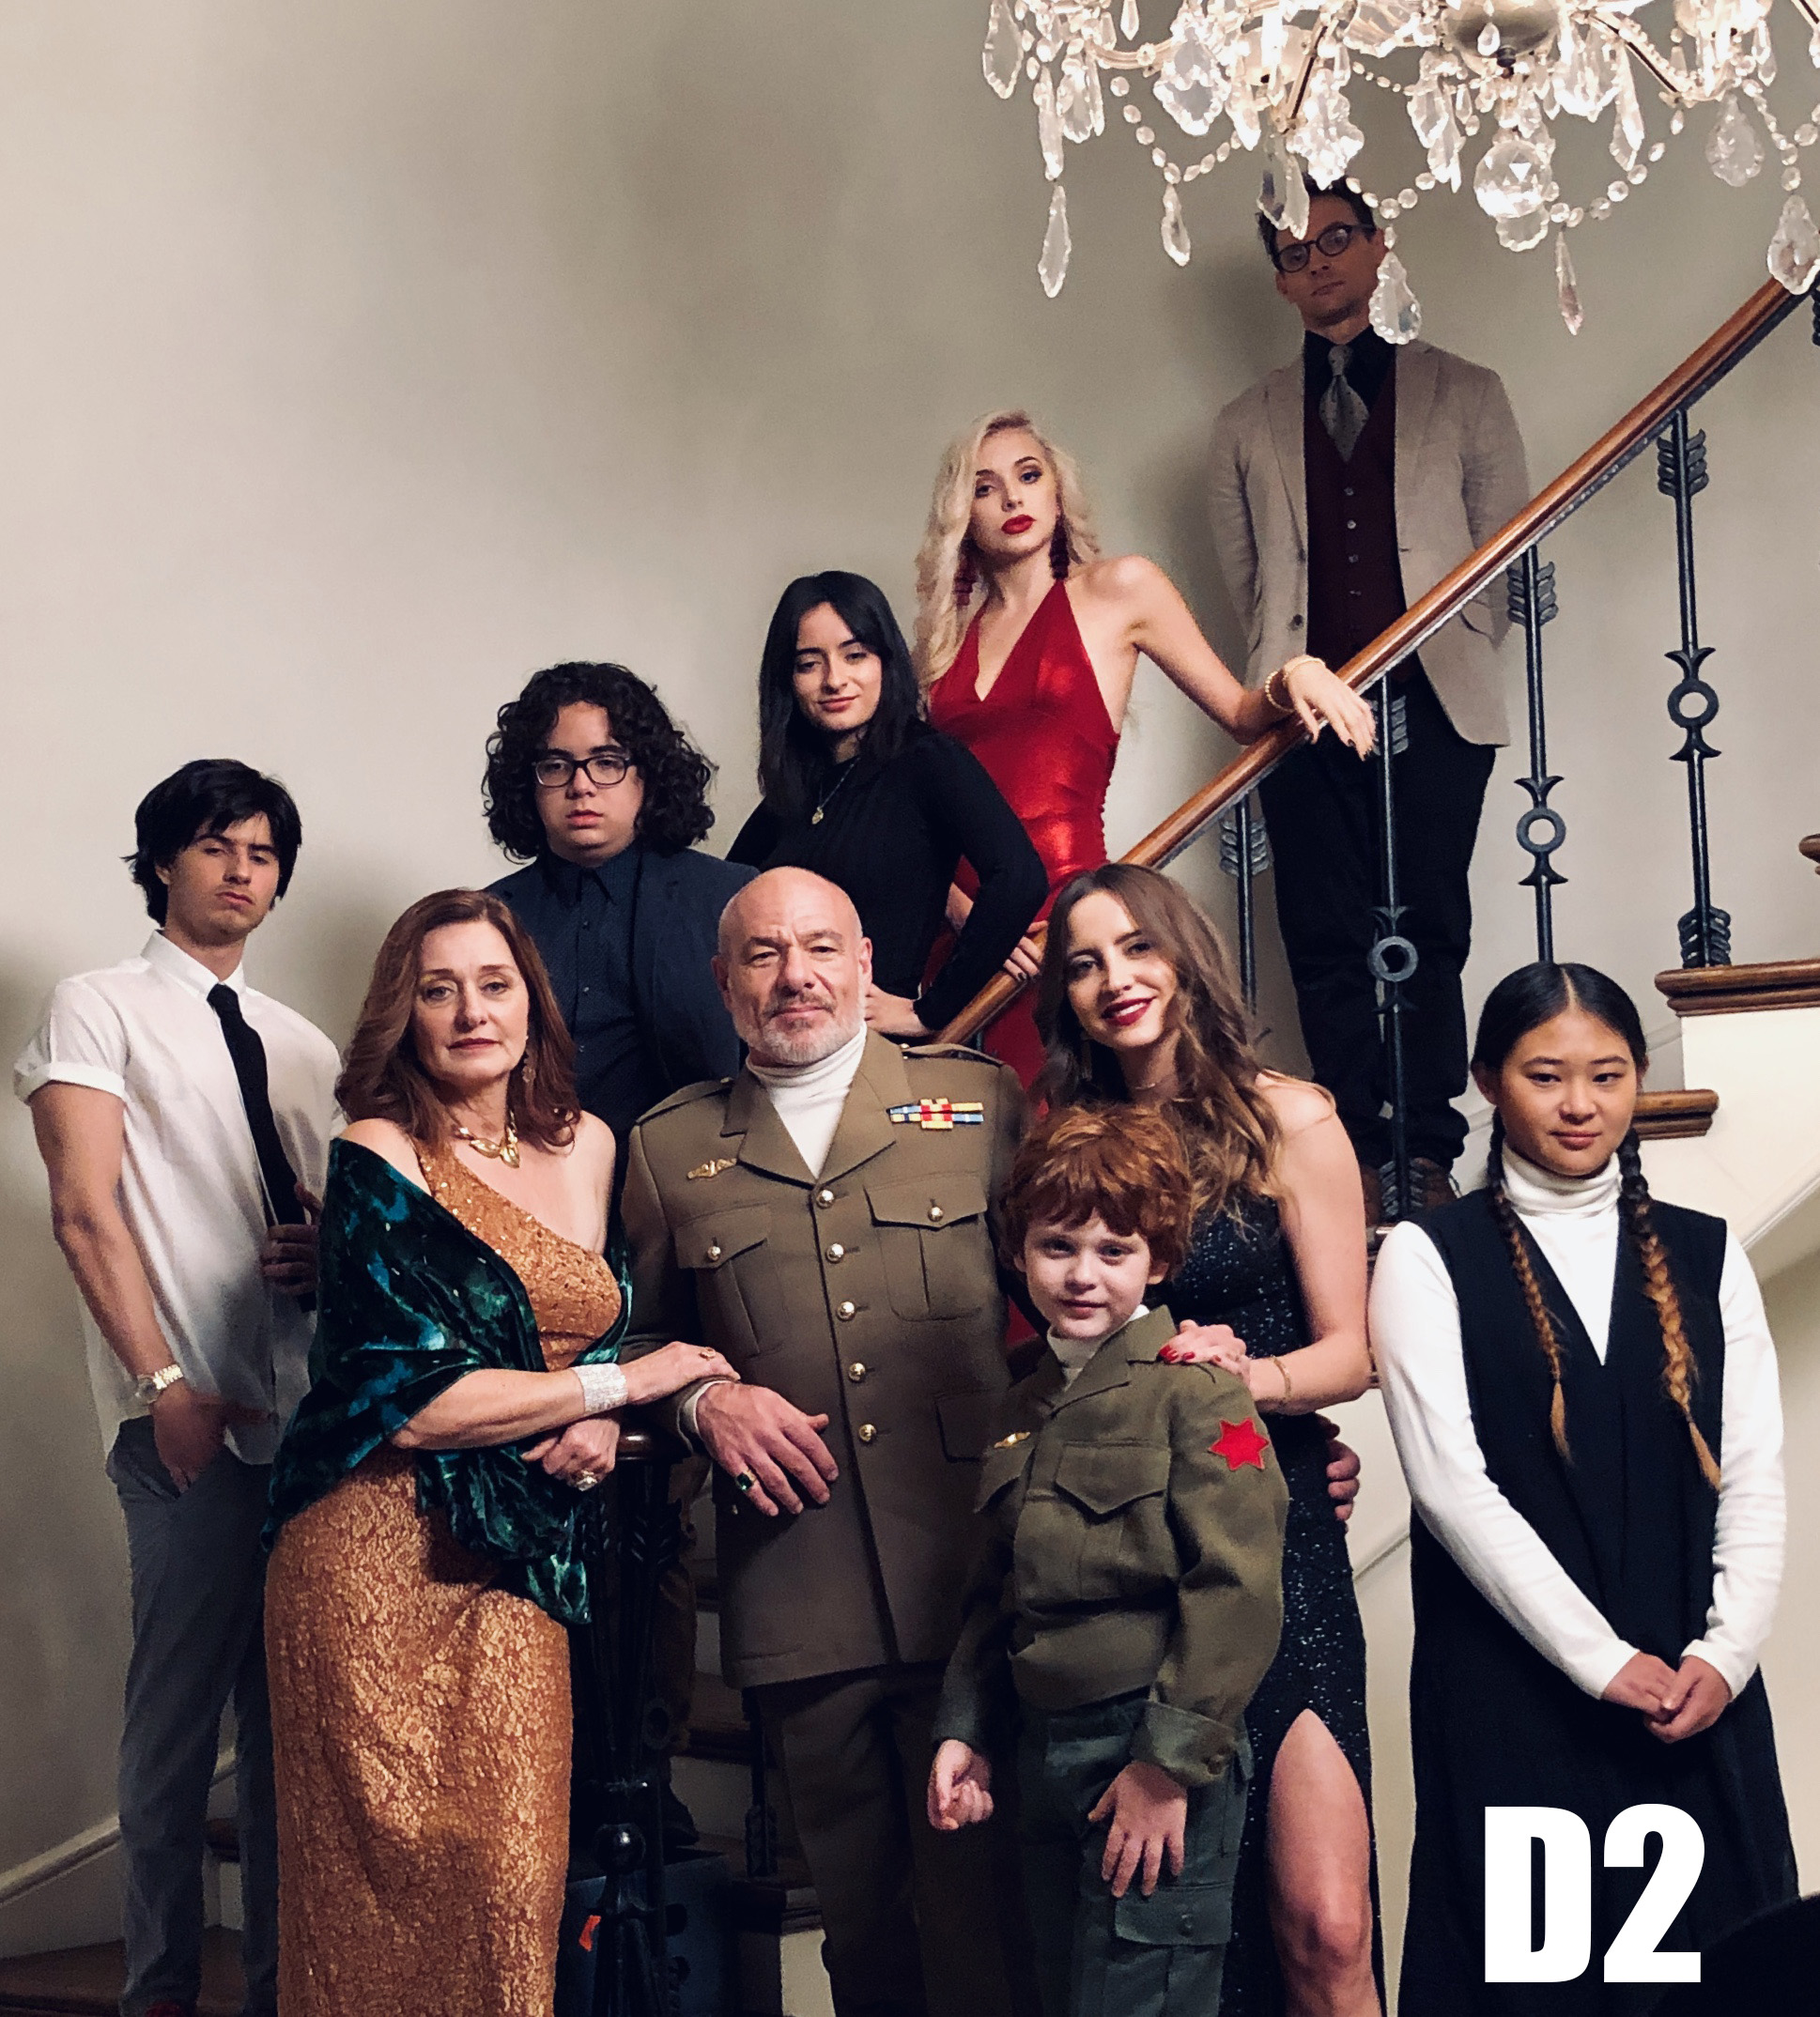 D2 (2019) - (In Post-production)(TV Series Pilot)Credit: 1st Assistant DirectorGenre: Comedy/DramaDirected by Mario GarzaSynopsis:During the dinner of an atypical family, the flaws of each member start to stand out.Country: USA